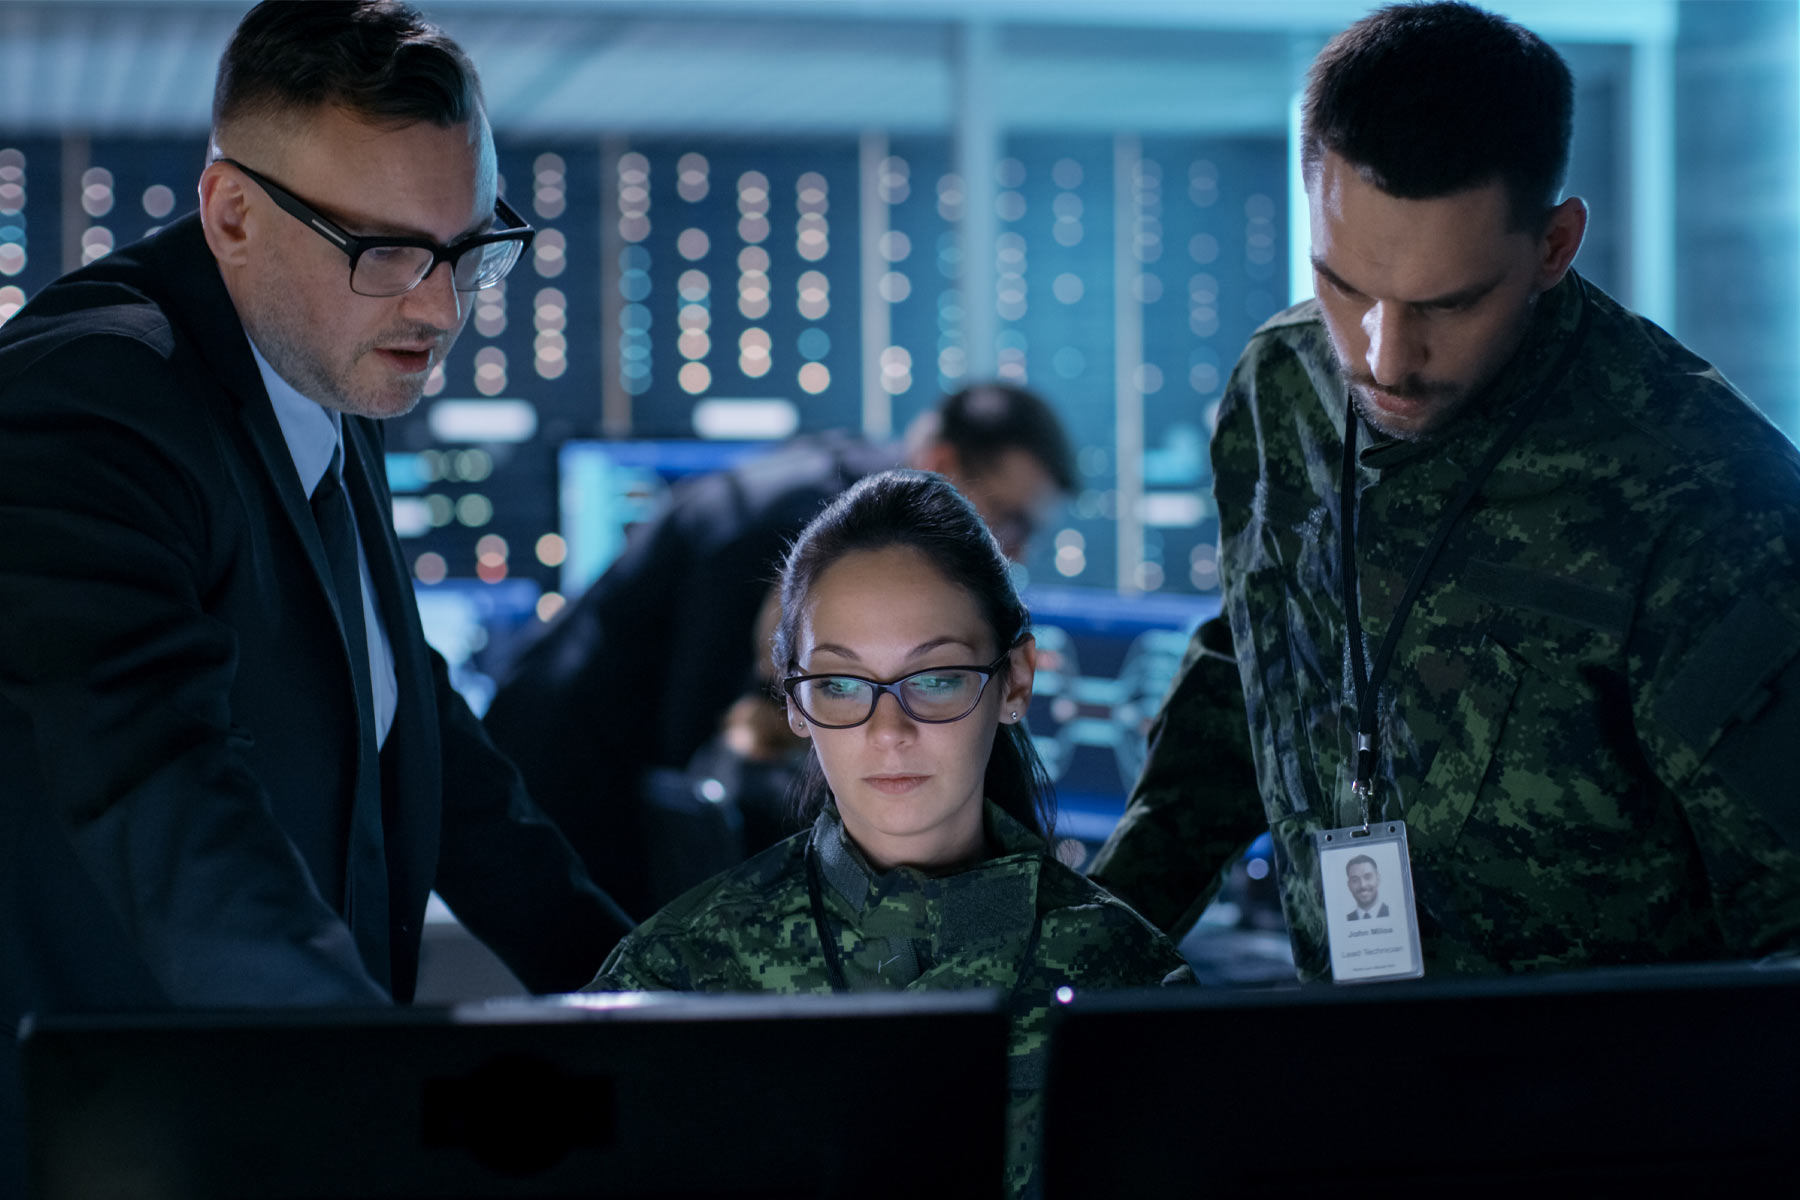 military personnel looking at computer and talking